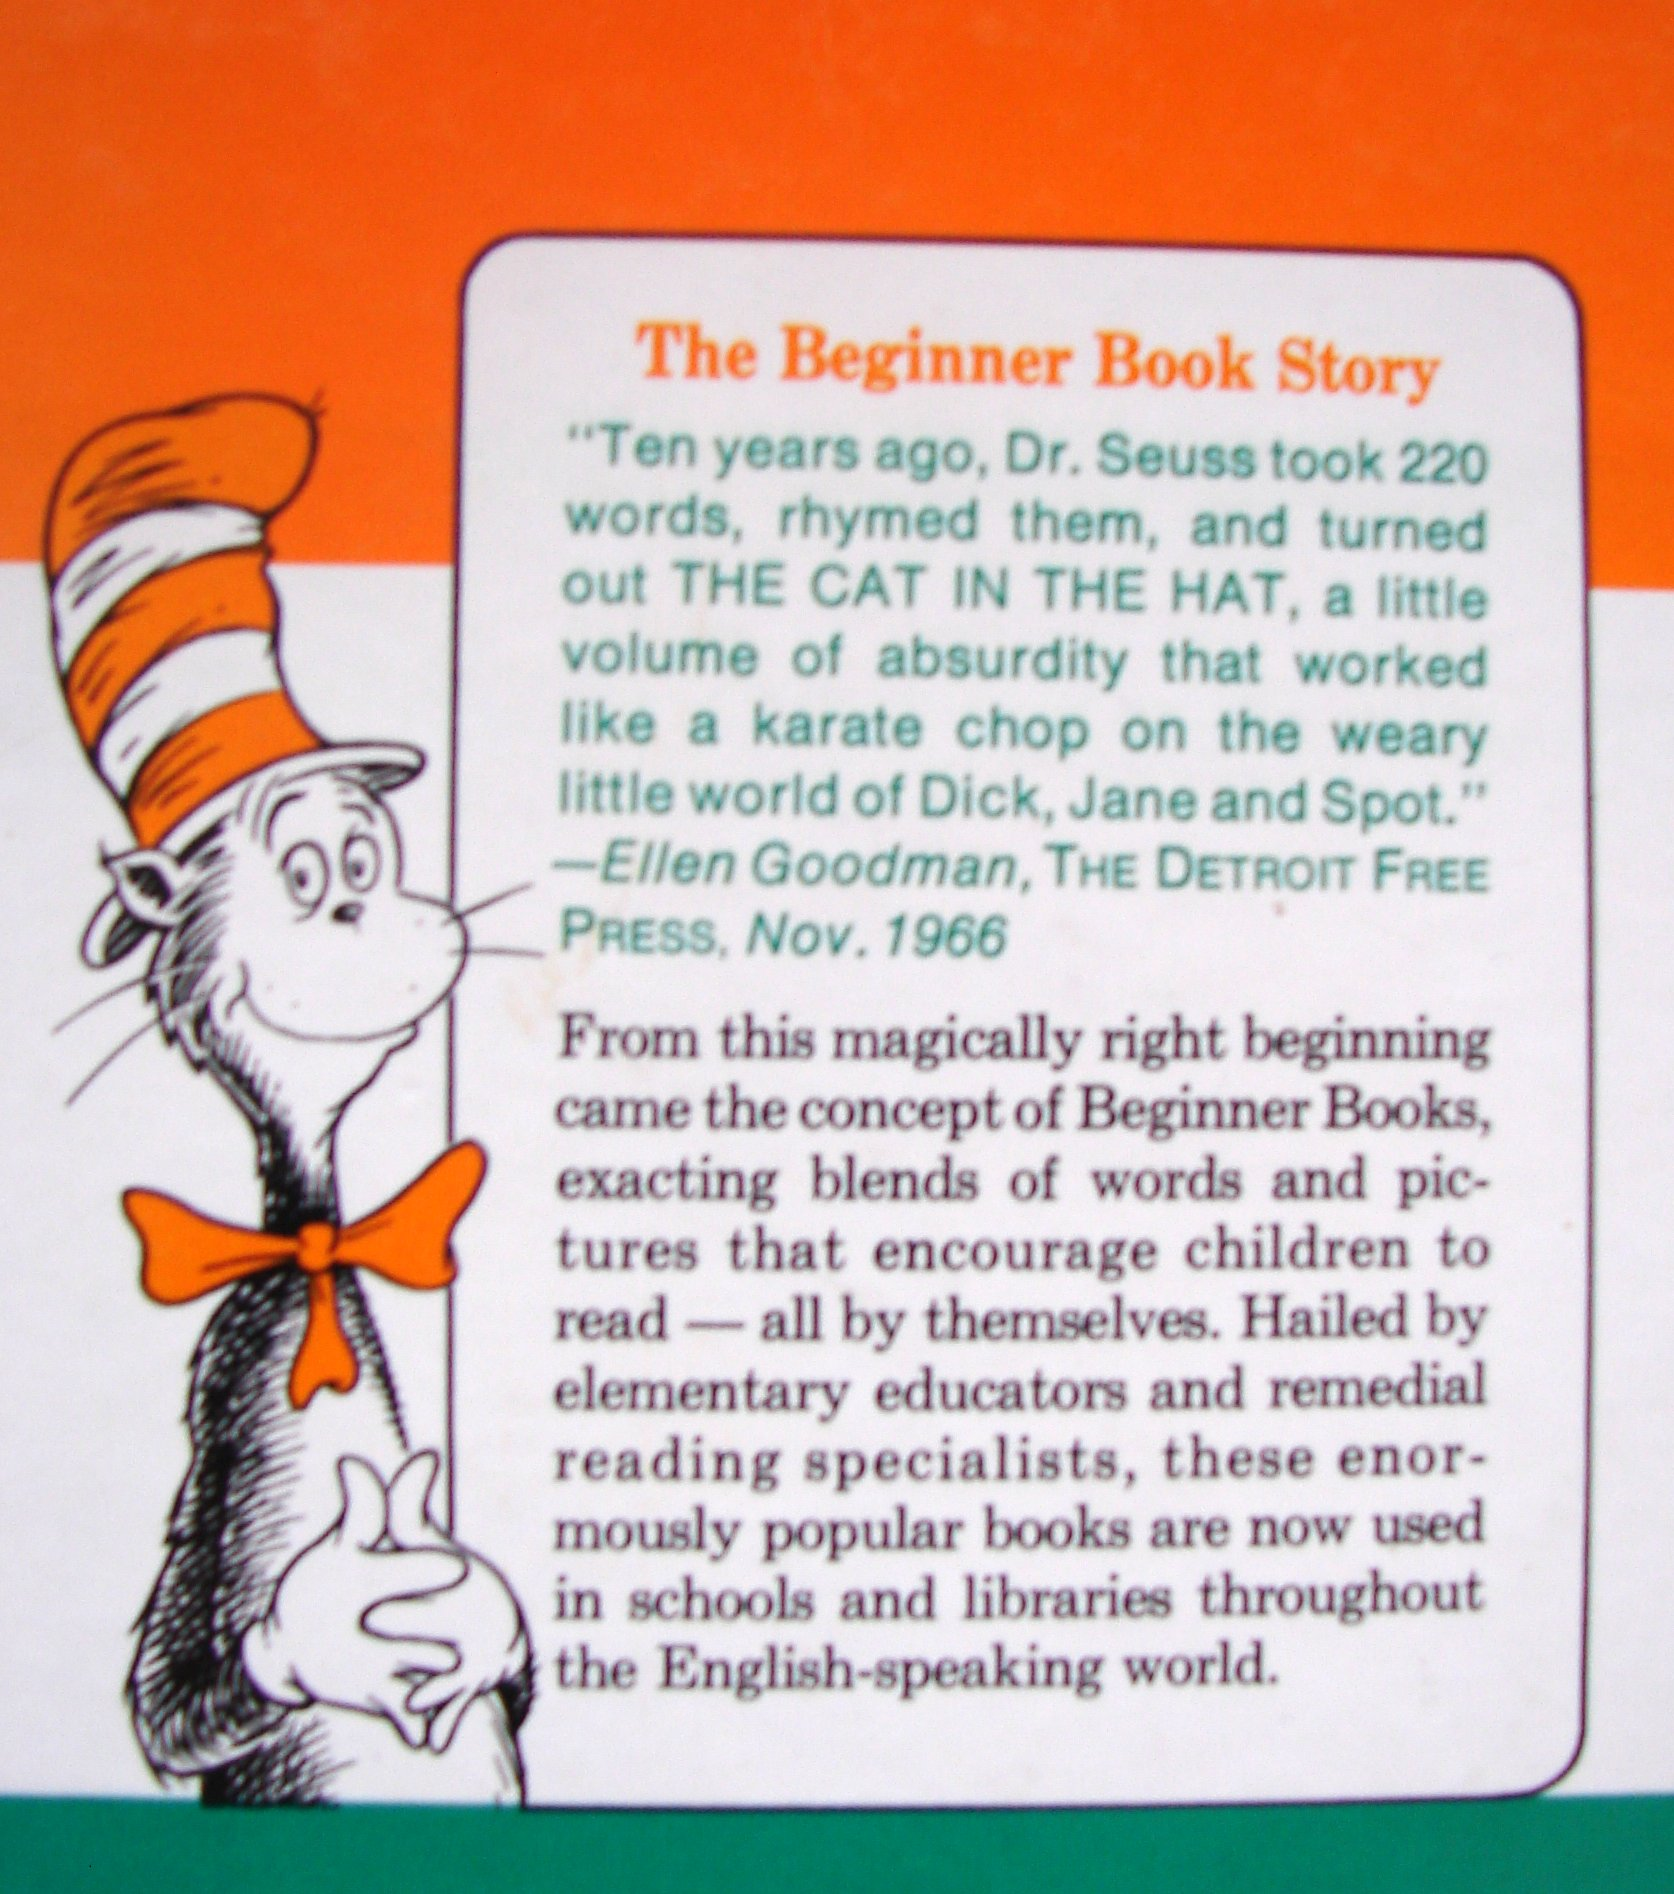 Dr Seuss: the cat in the hat character and back cover text